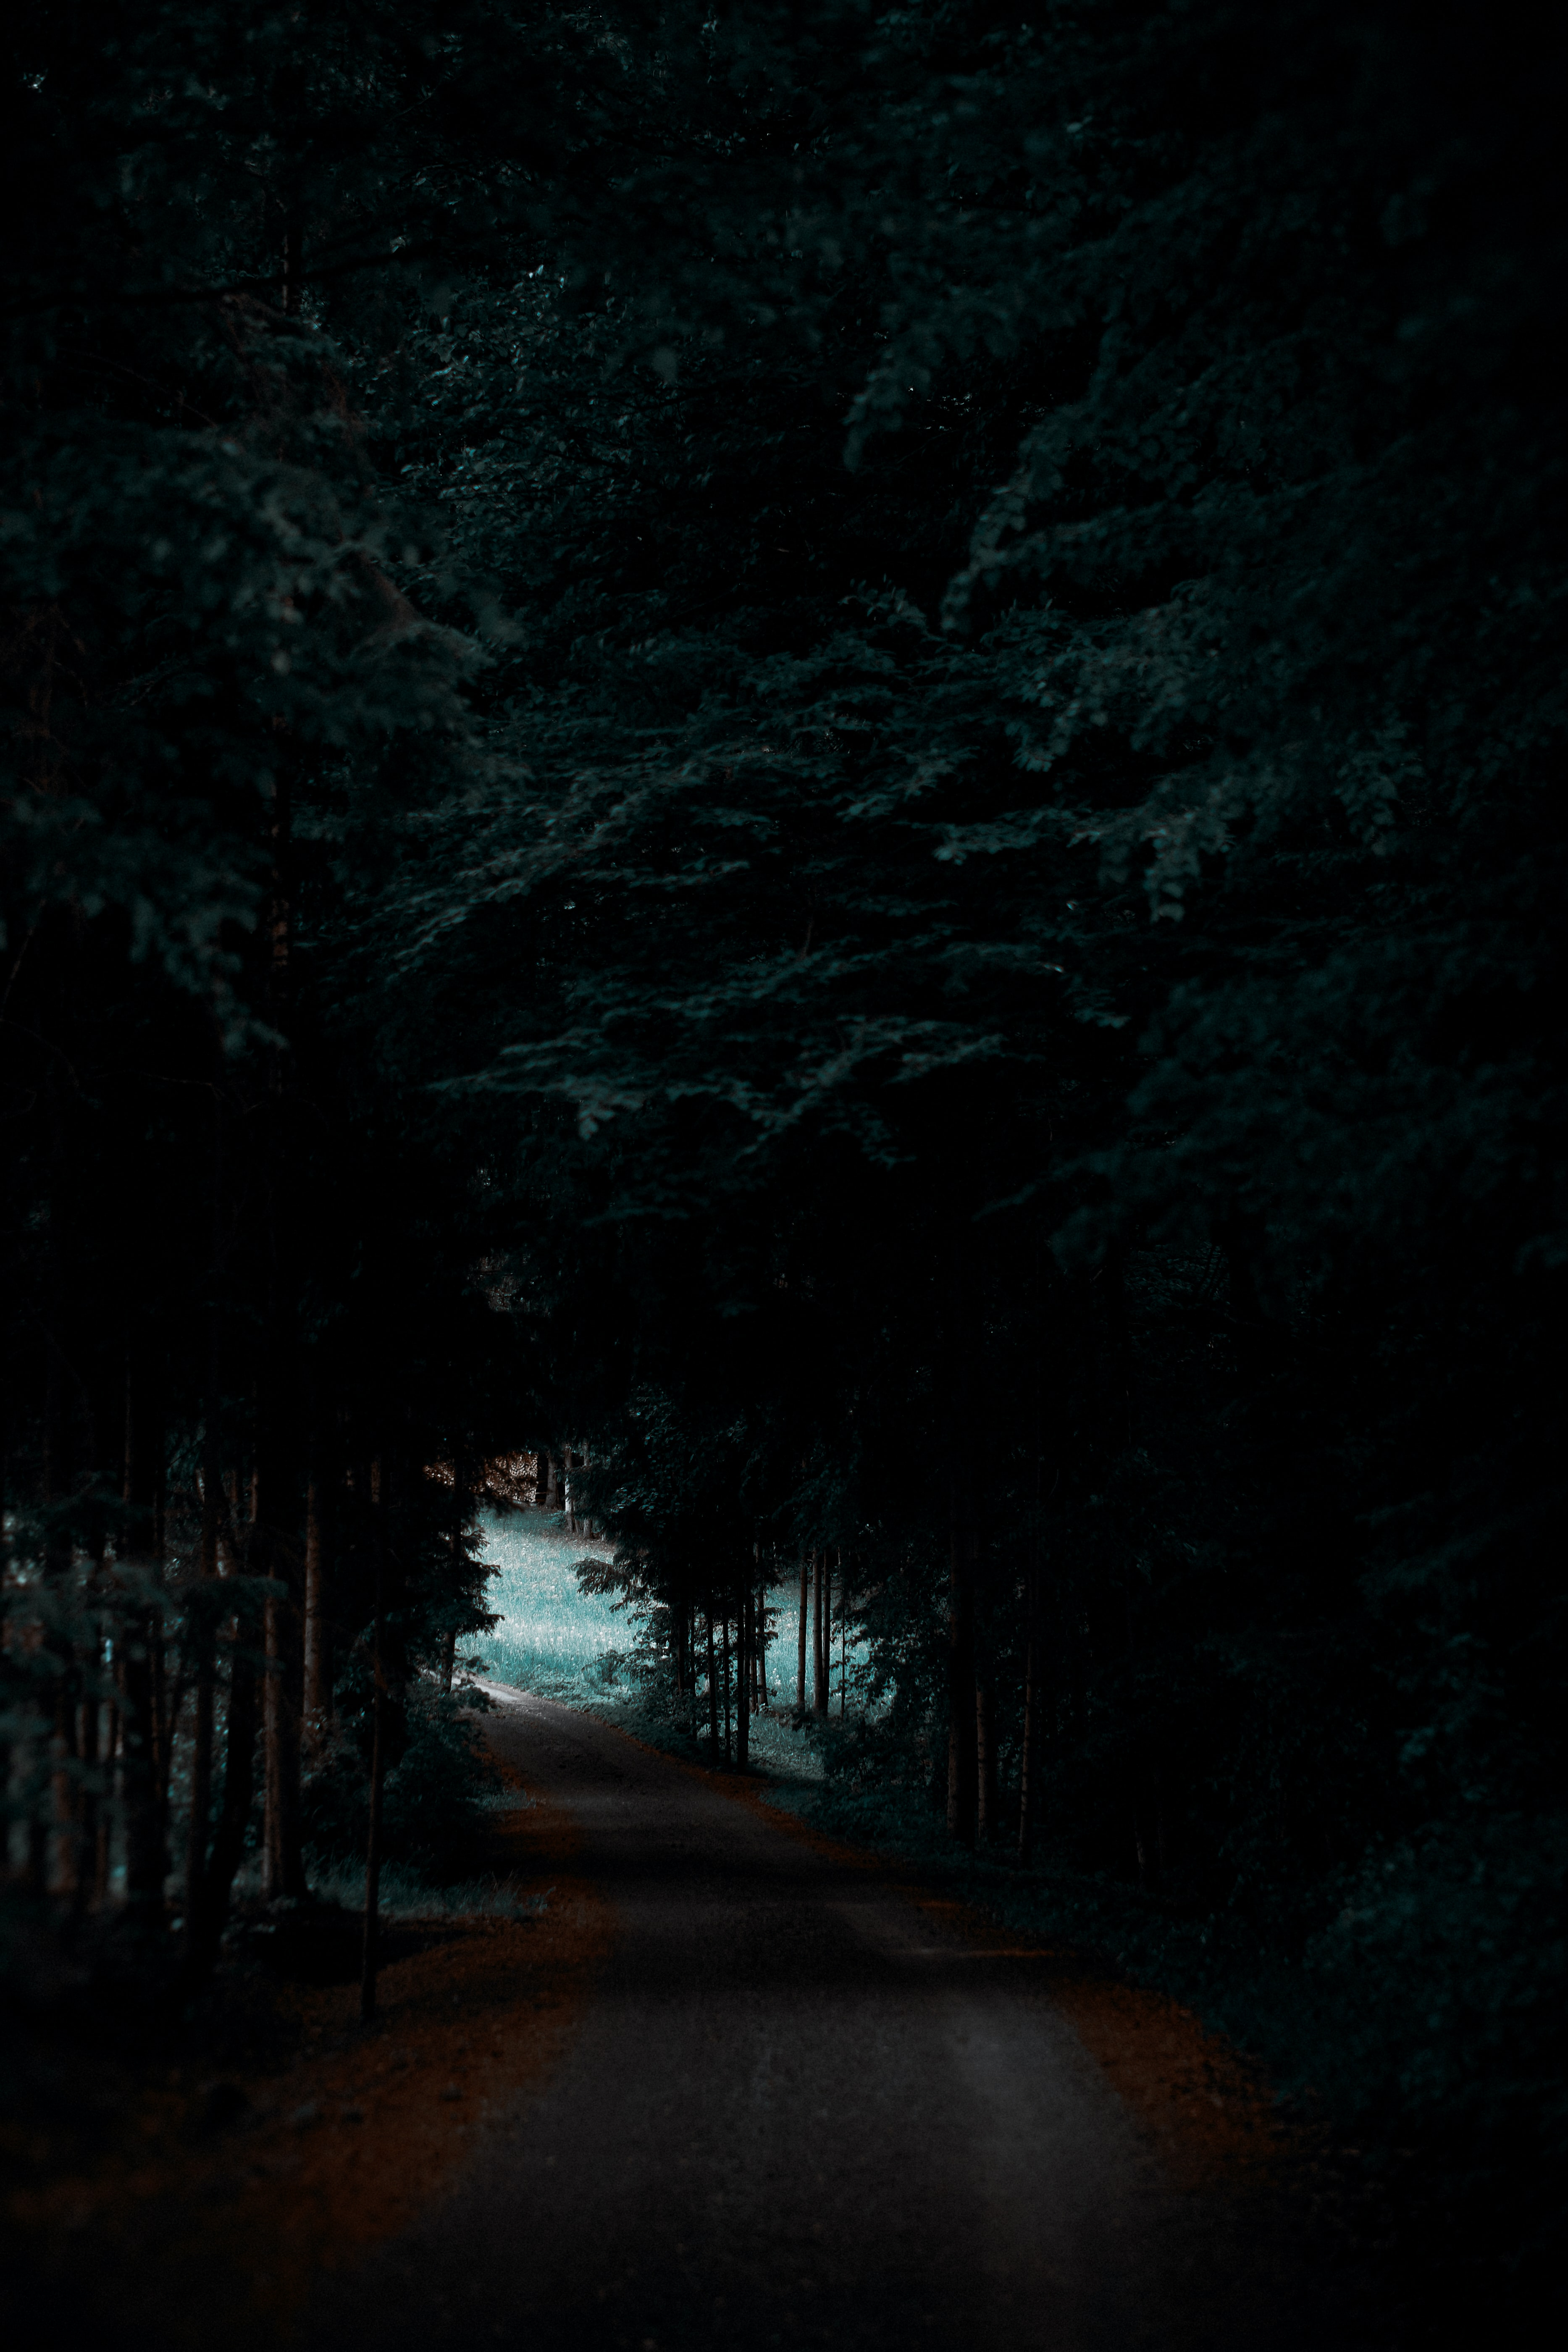 gray road between forest